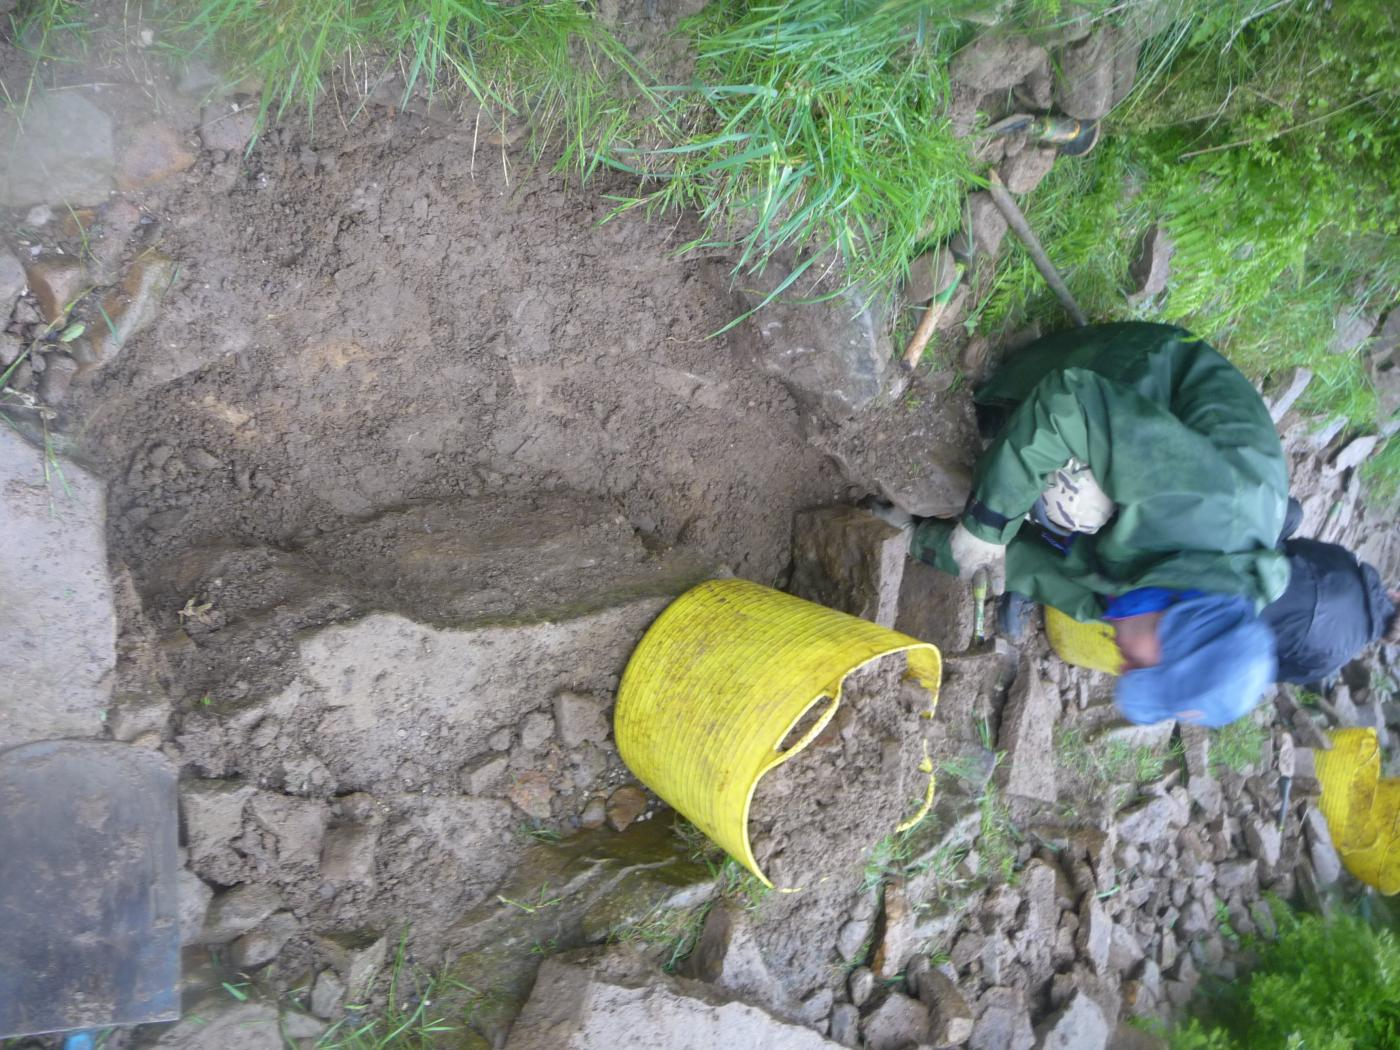 Stone pitching 1 - A hole is dug (easier said than done in stony ground)